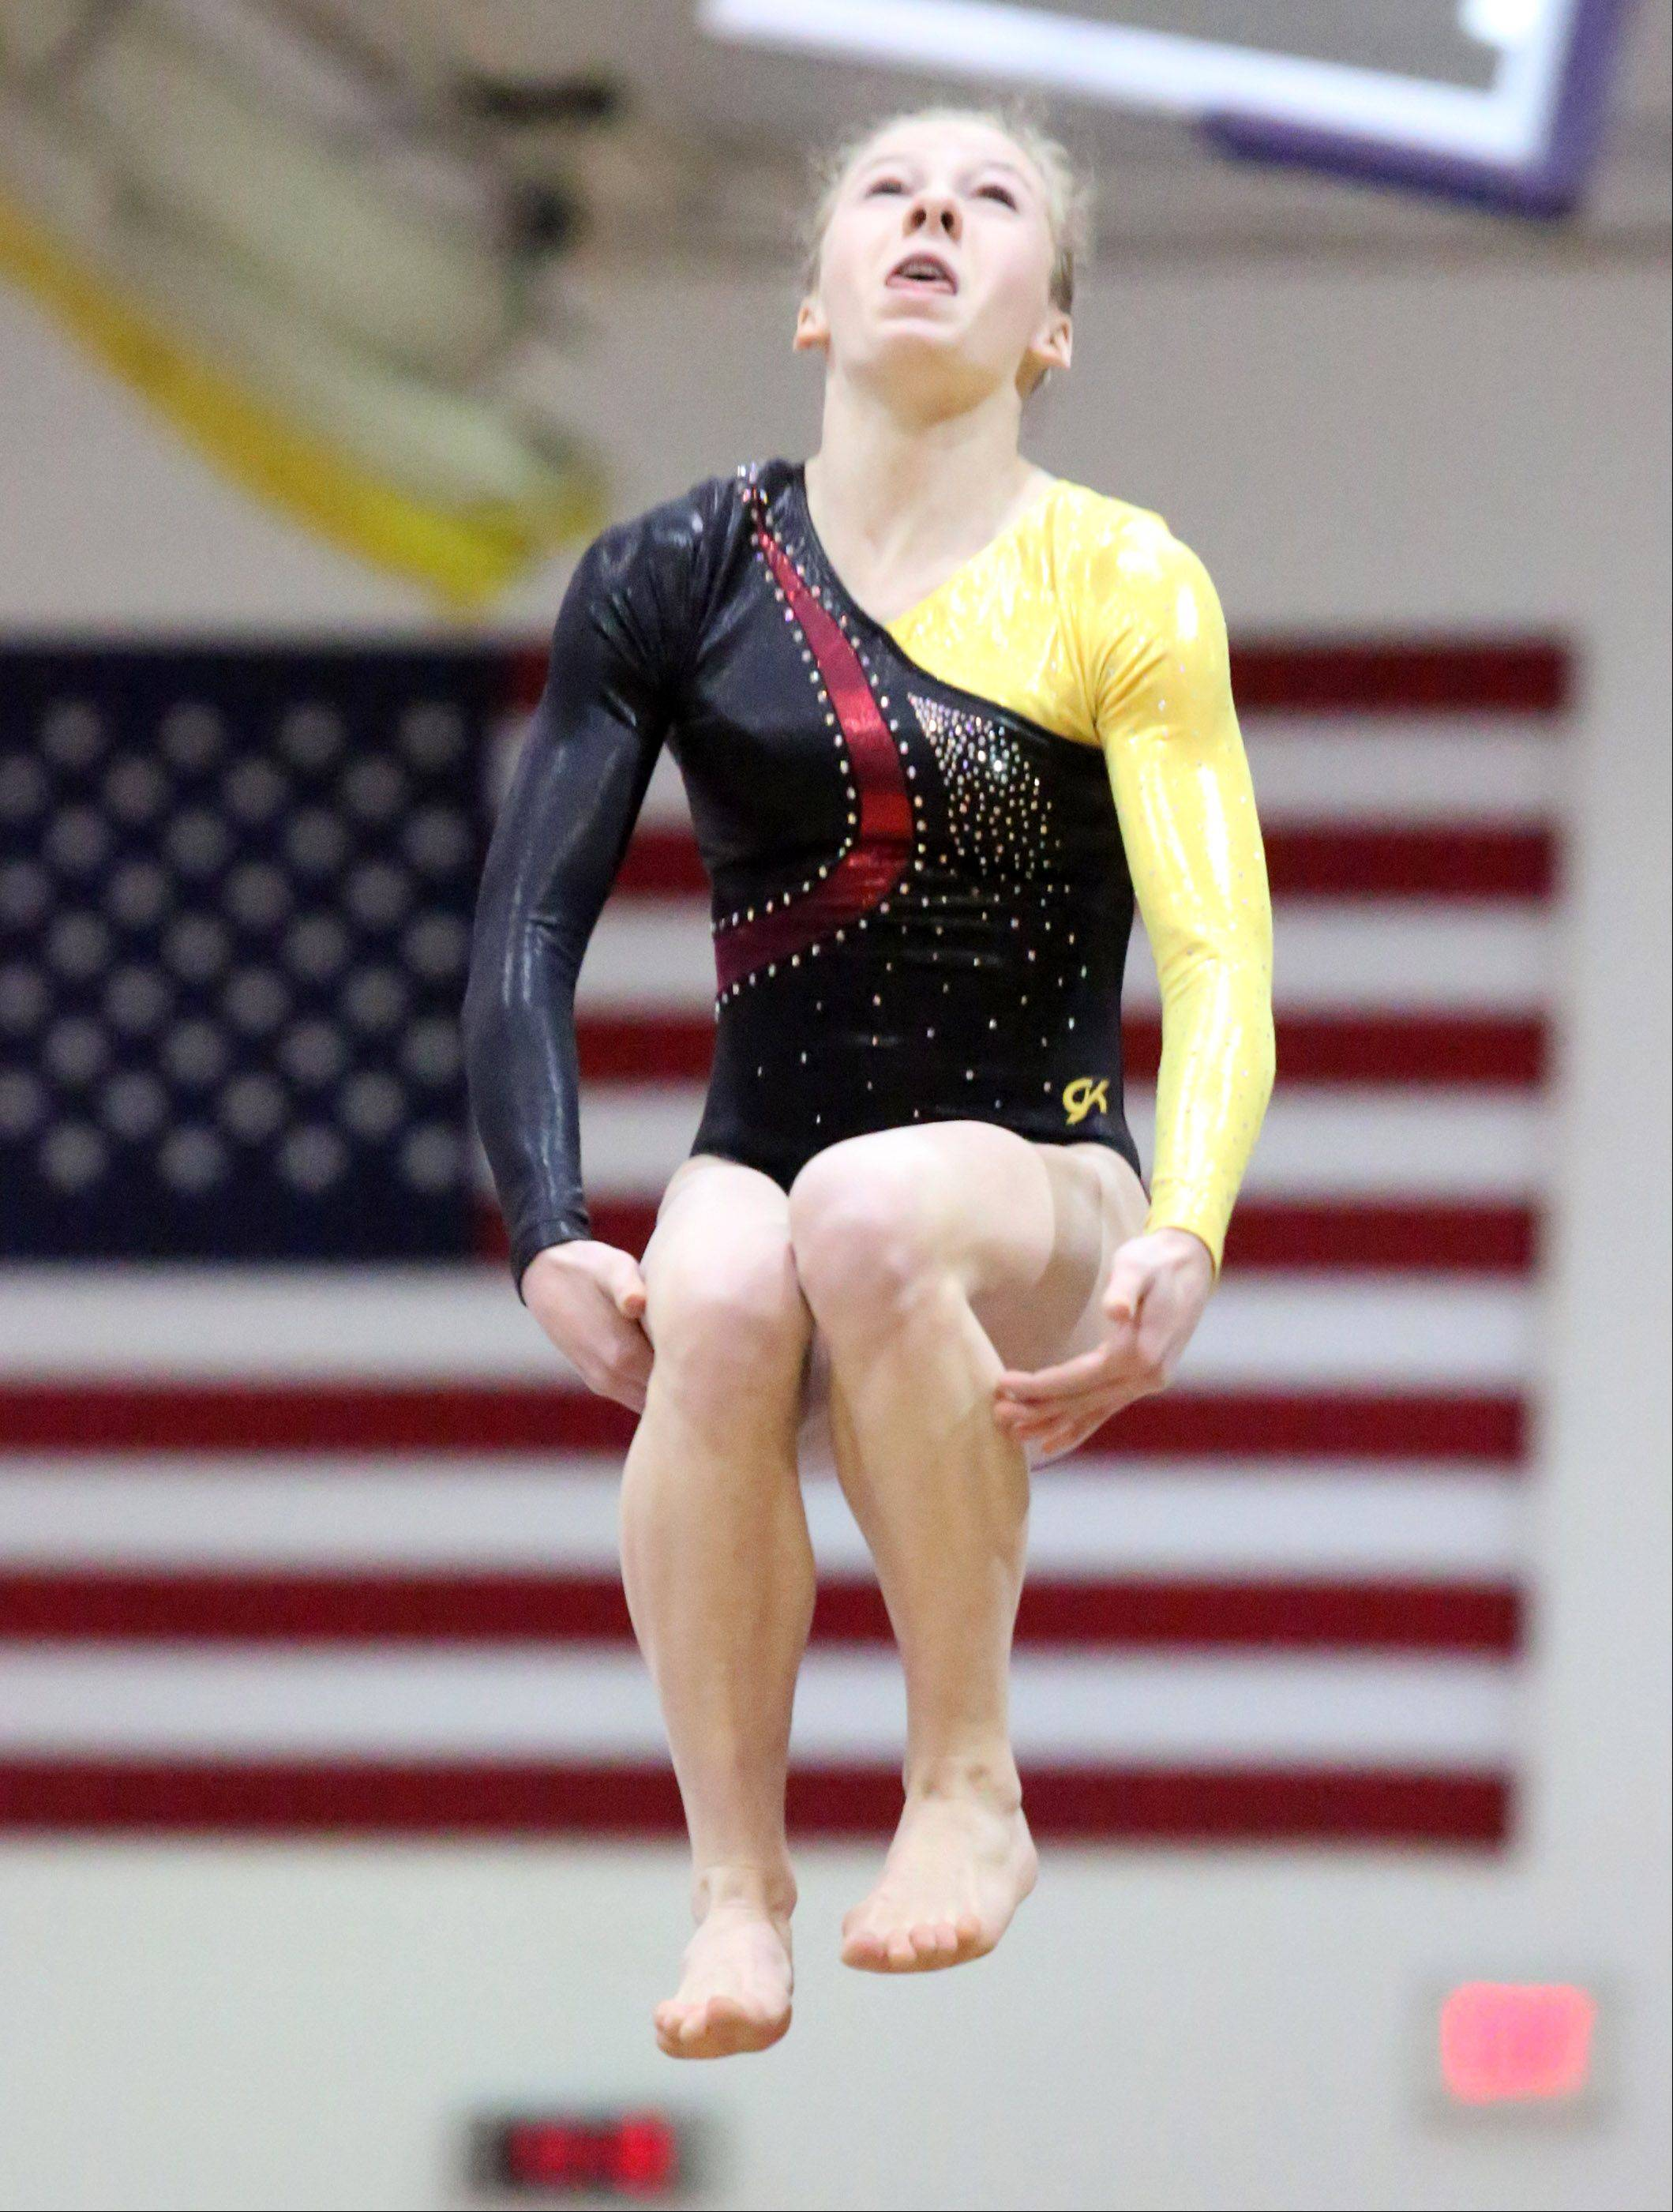 Schaumburg's Alyssa Kiszka competes on the vault at the Rolling Meadows Al Galatte Invitational on Saturday.